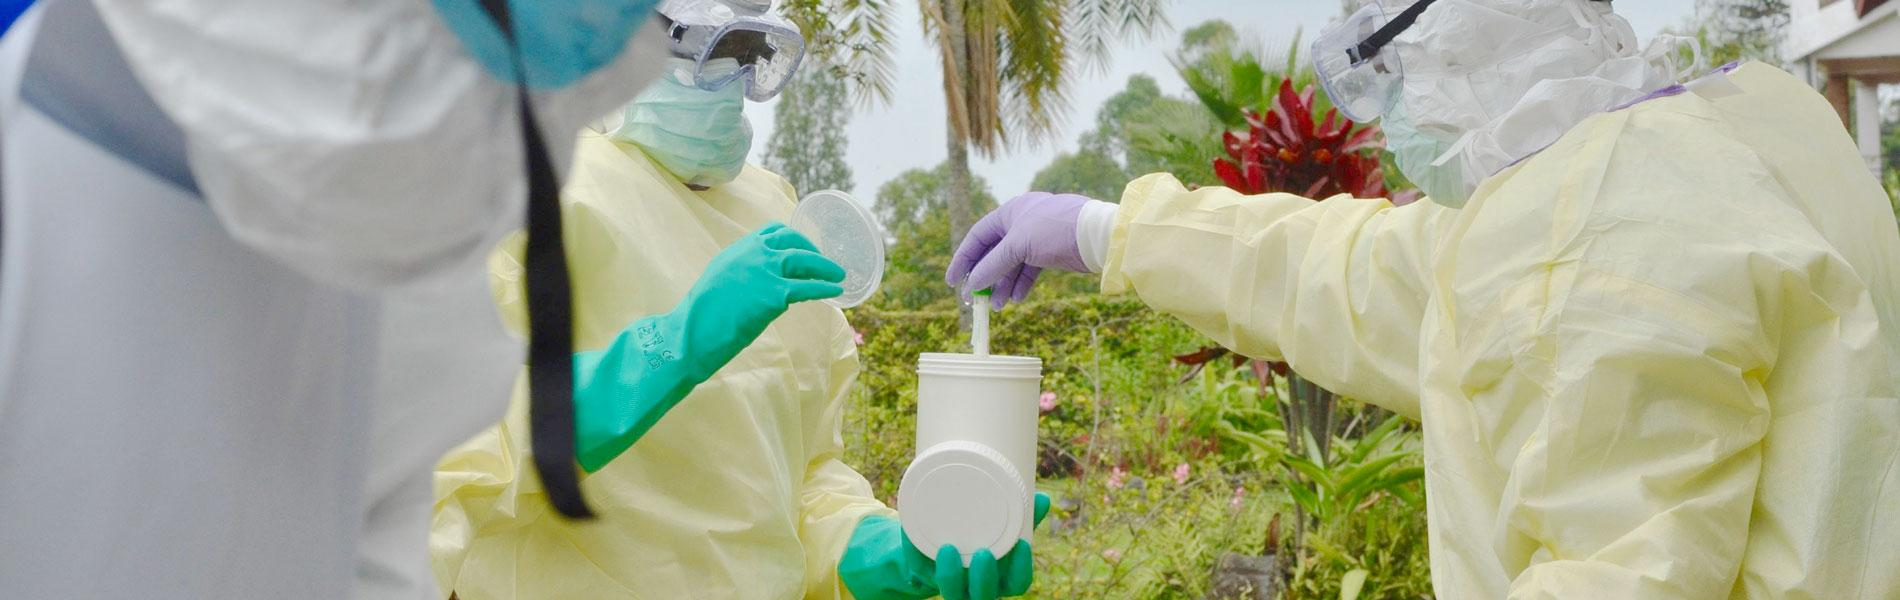 Ebola Rapid Response Team during a simulation exercise